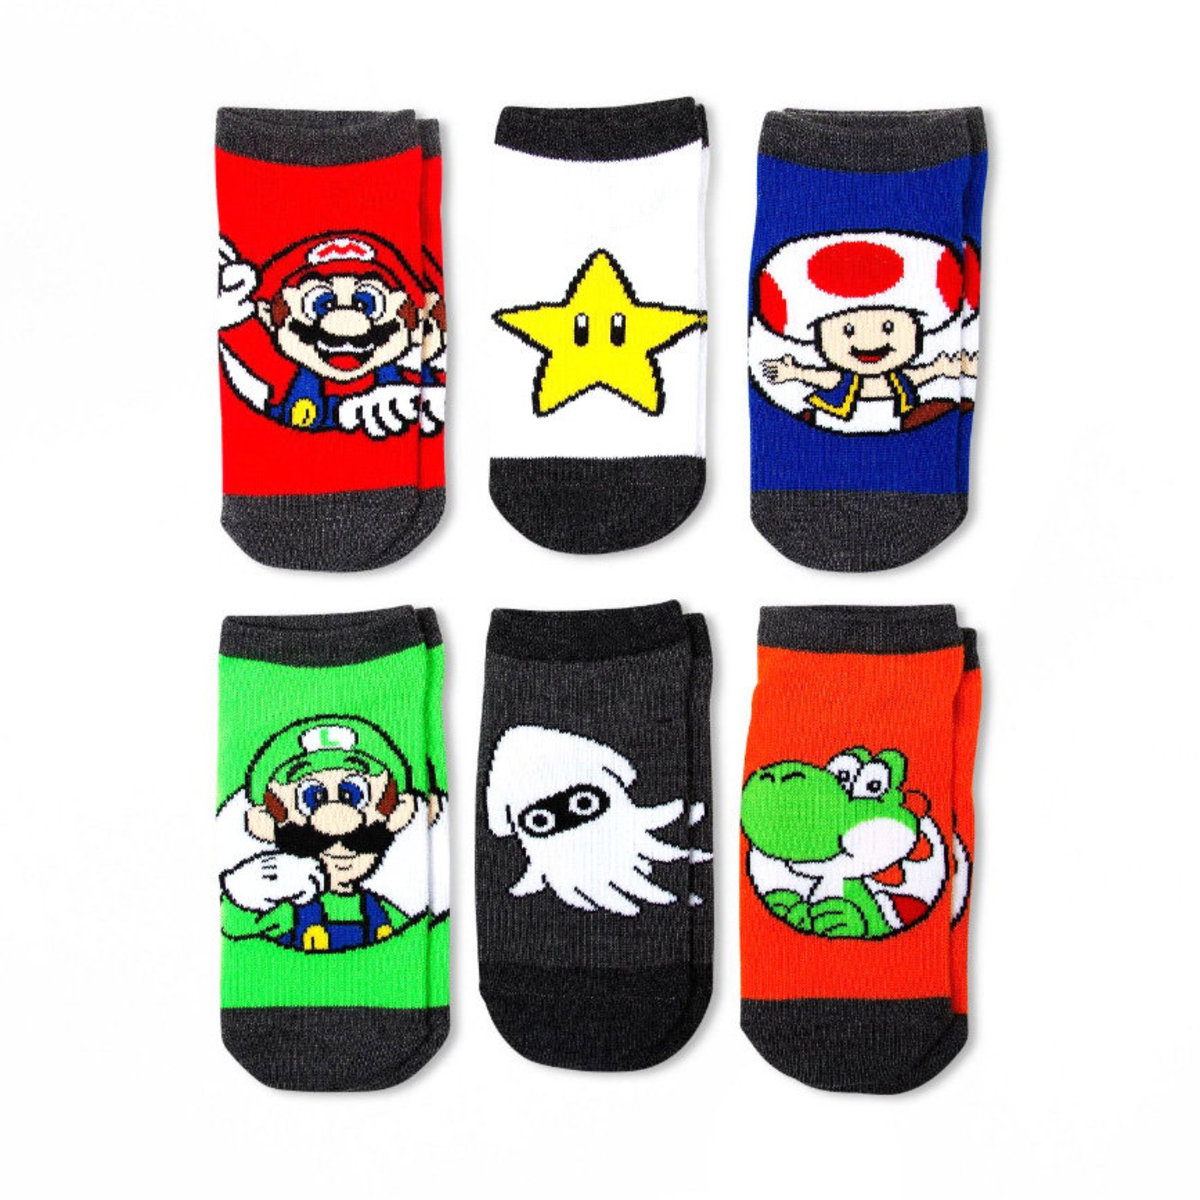 Kids Super Mario Socks 6 pairs (parallel)